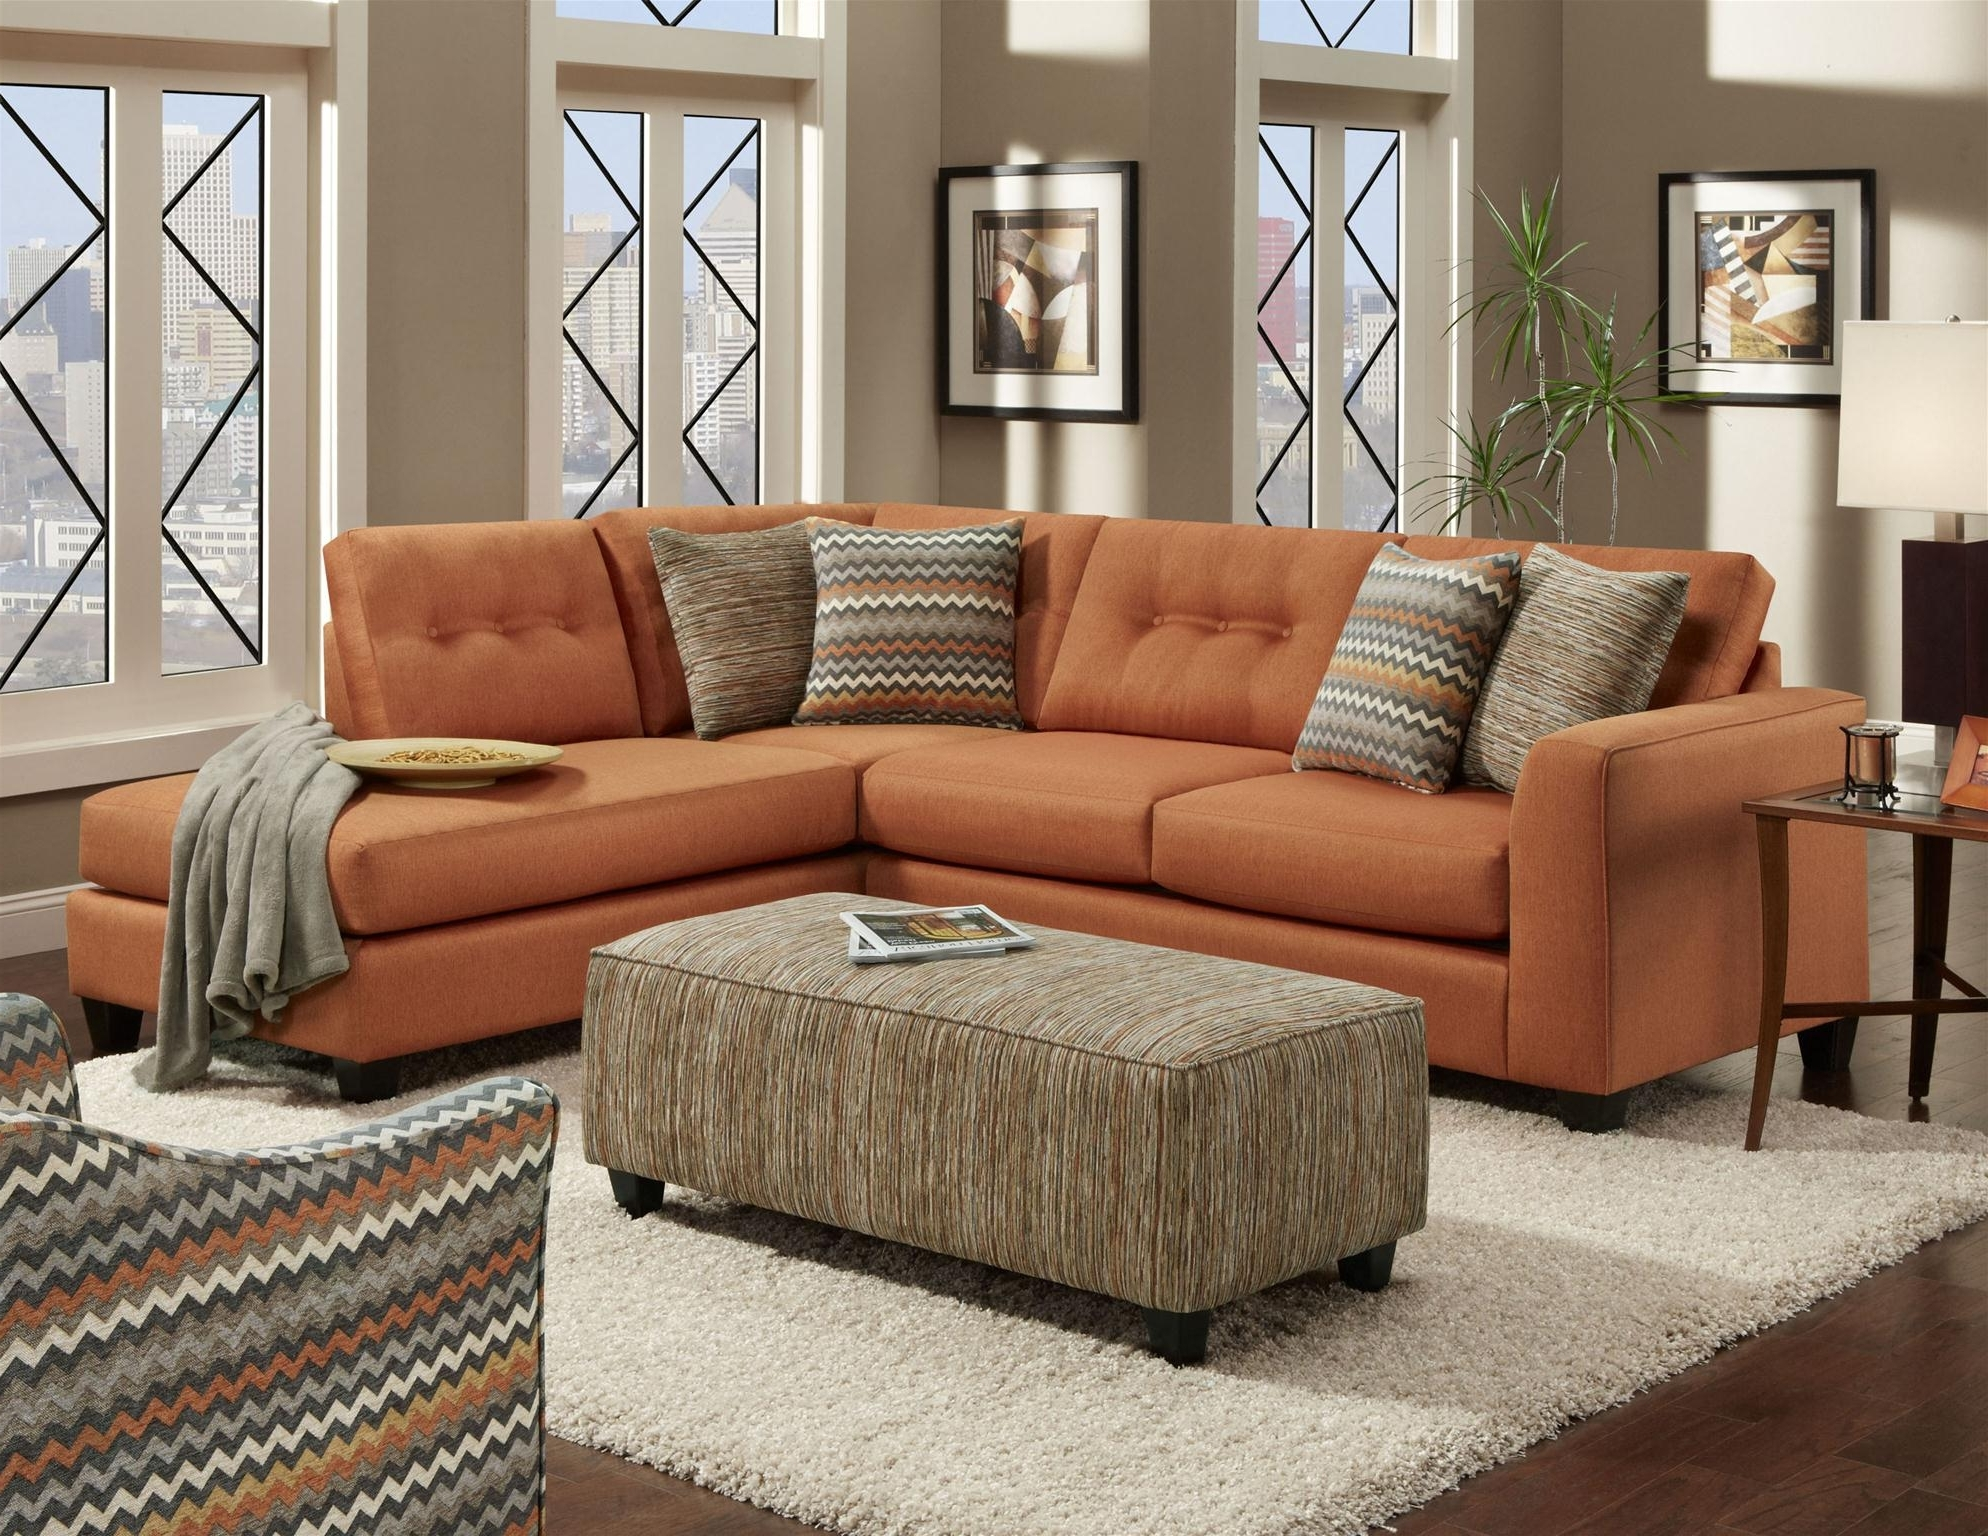 Orange Sectional Sofas Regarding Most Popular Should You Consider A Sectional? – Wg&r Furniture (View 12 of 20)